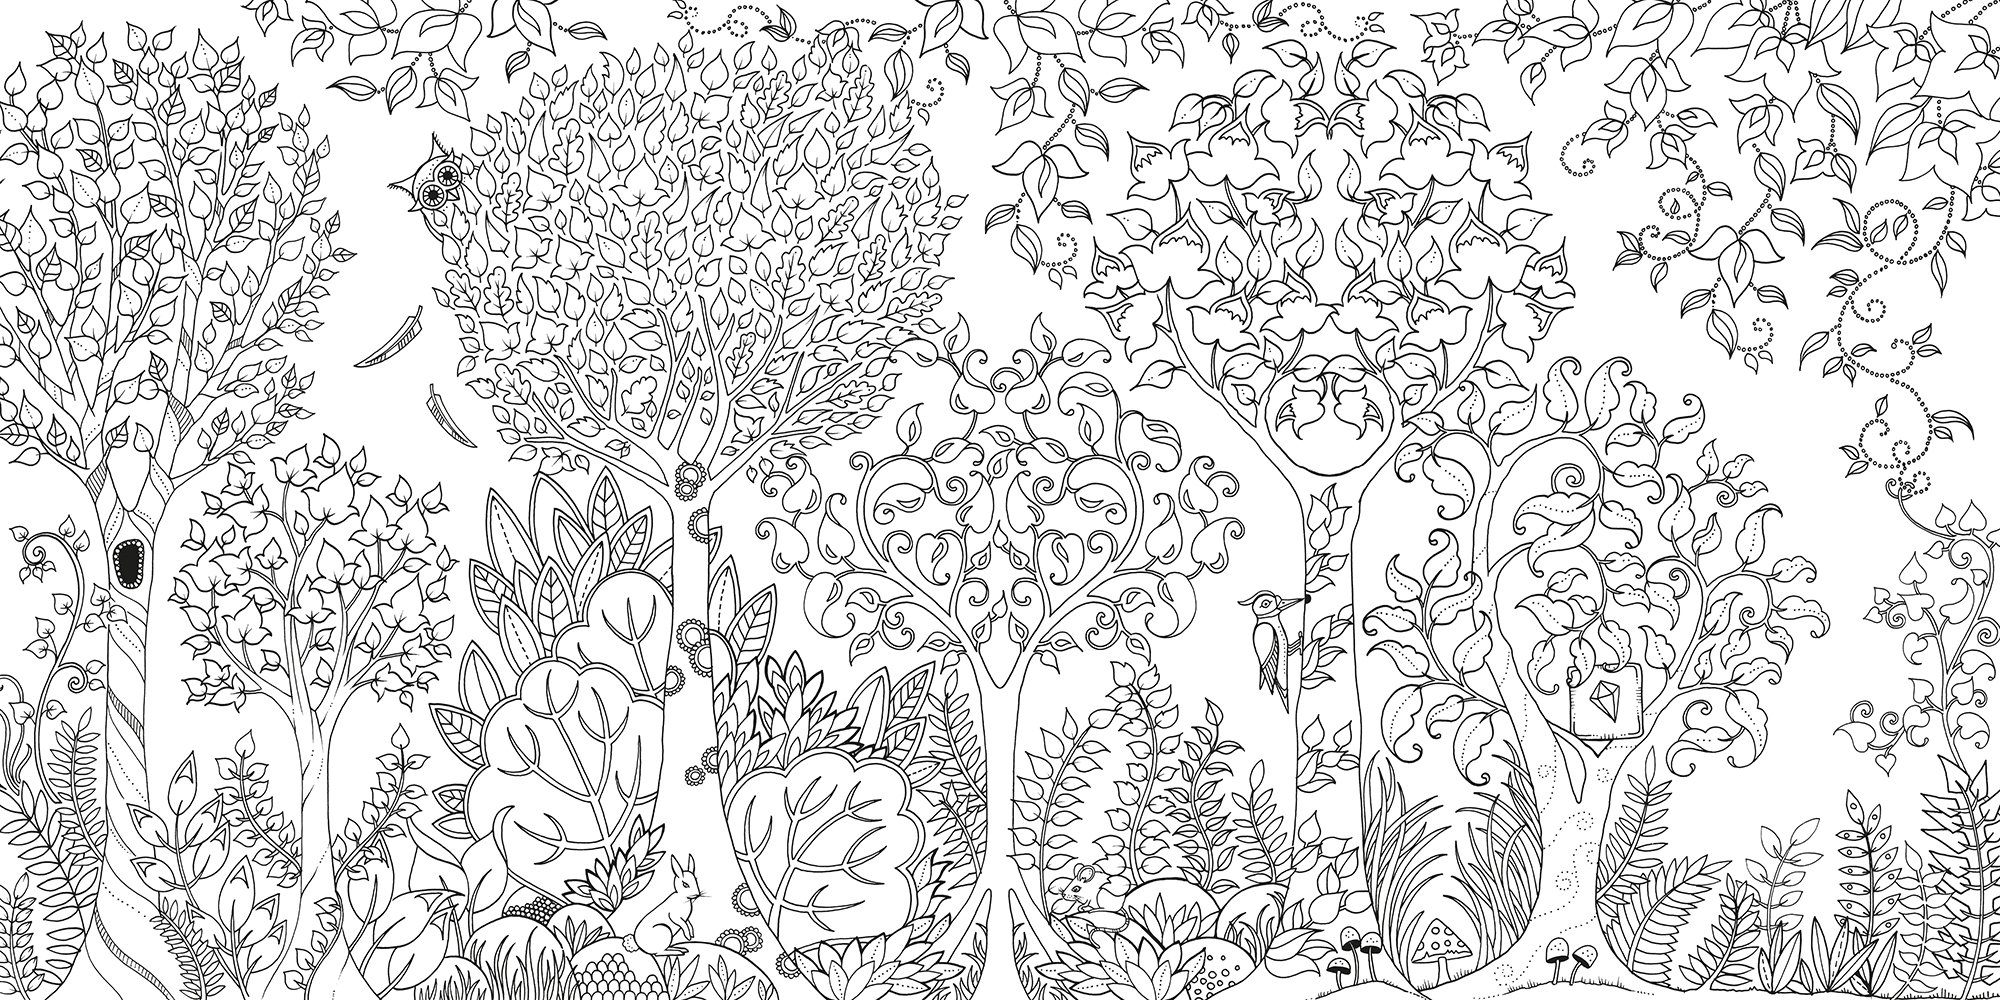 The enchanted forest coloring book uk - Enchanted Forest An Inky Quest Coloring Book Us Import Amazon Co Uk Johanna Basford 6063887956574 Books